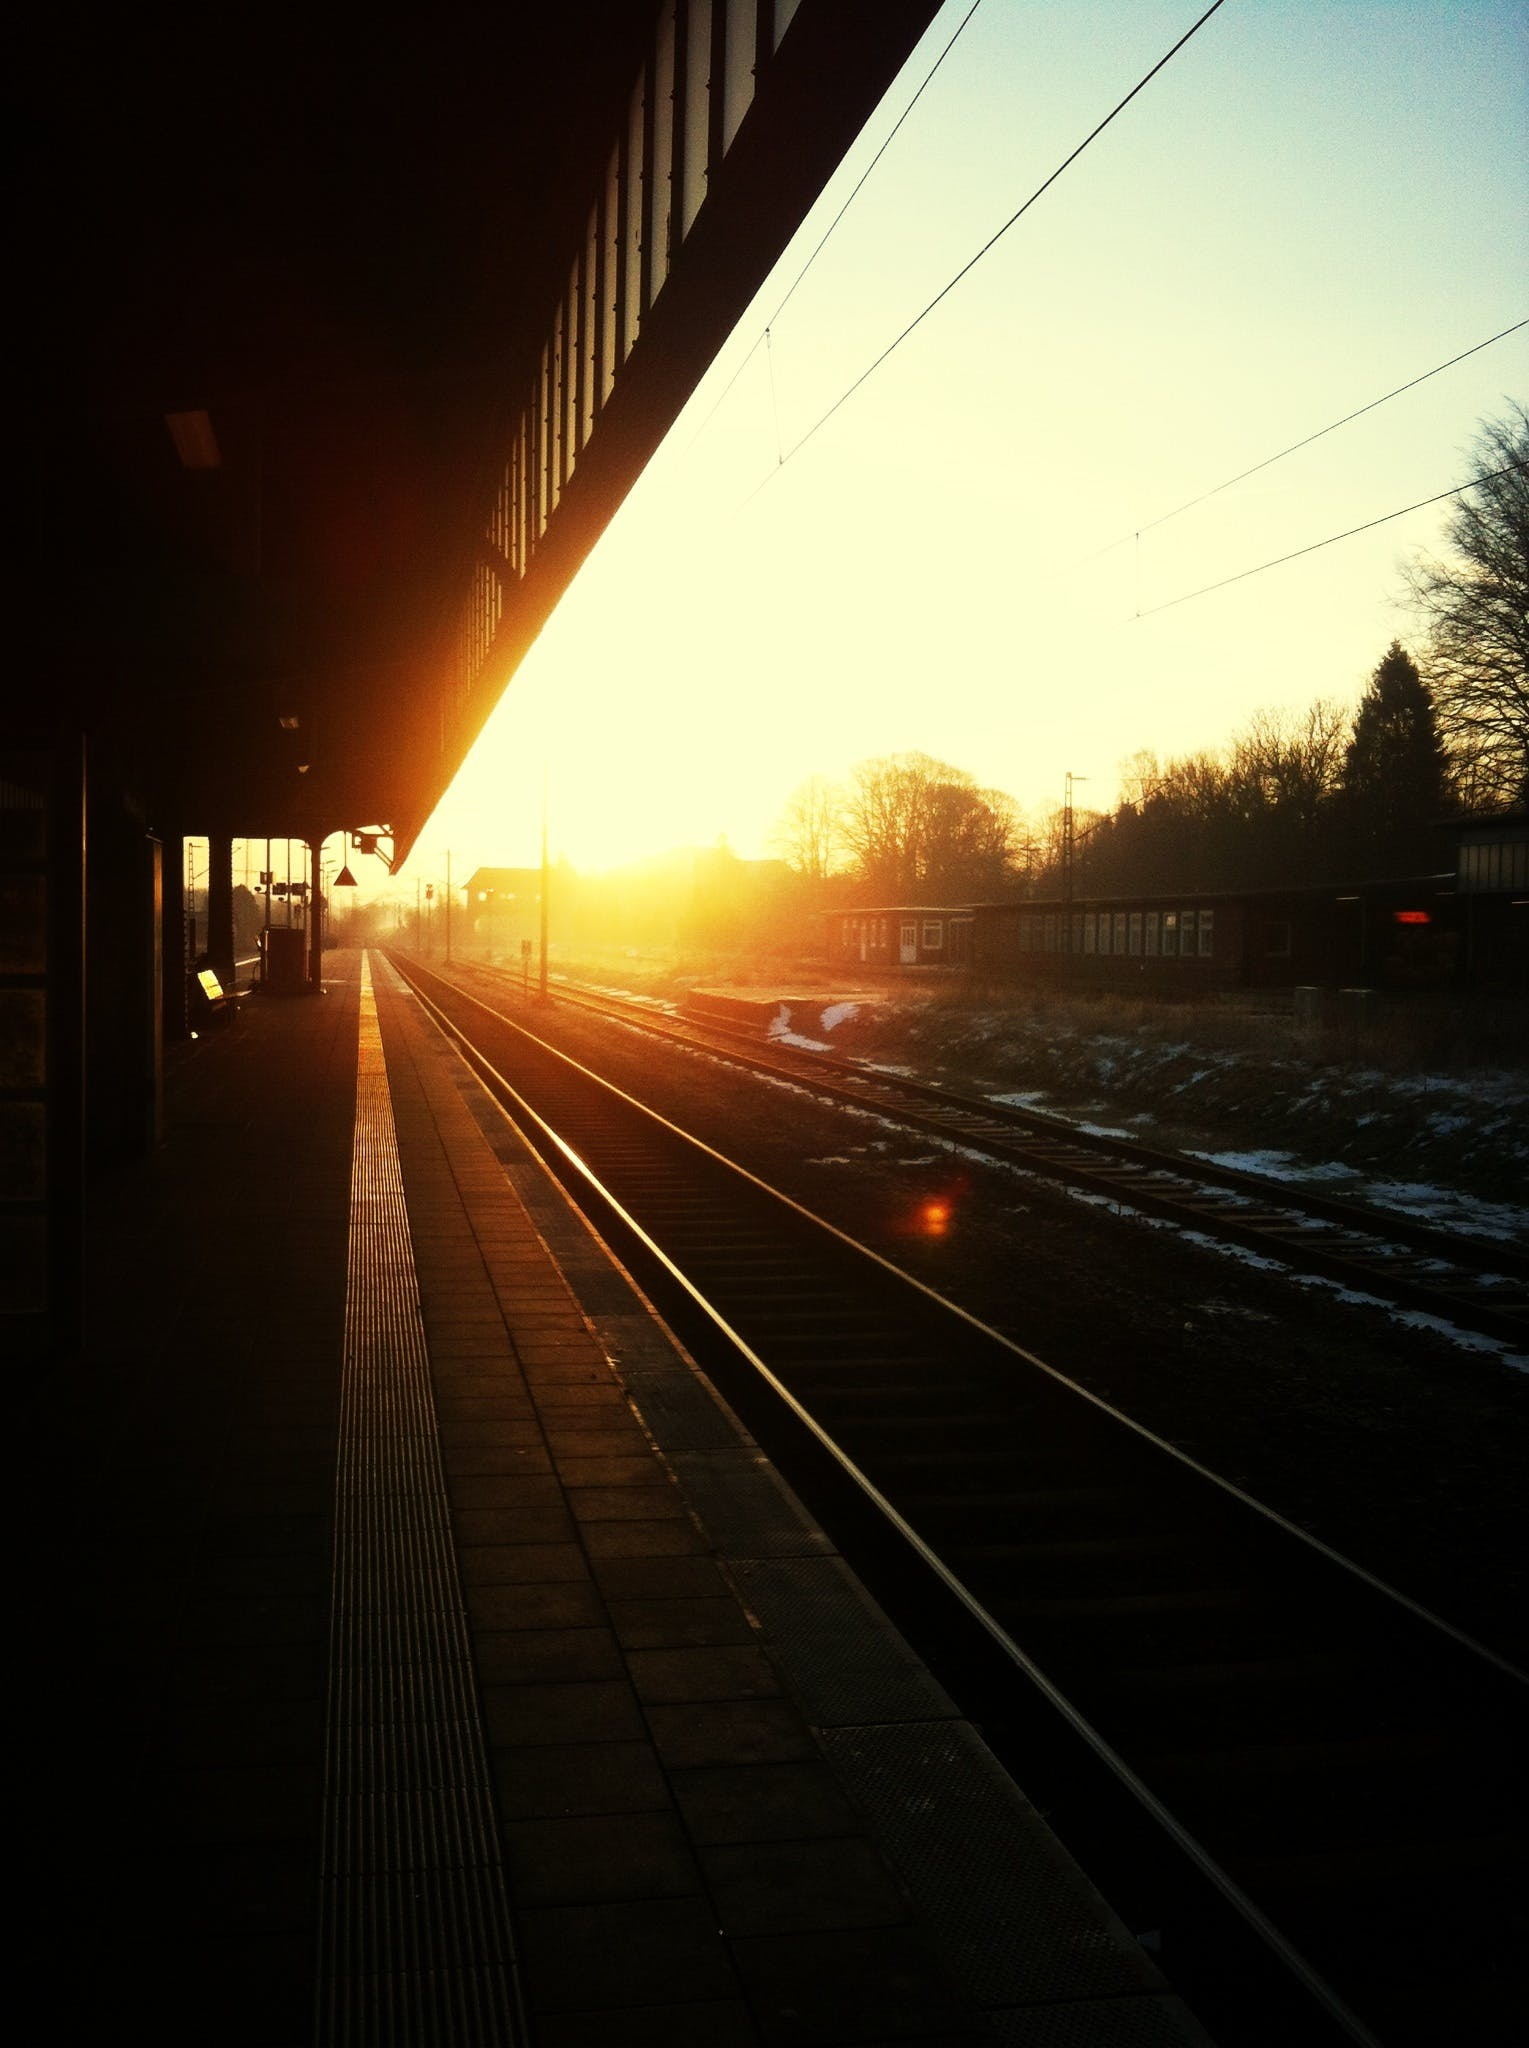 Free stock photo of idyll, morning sun, train station, train track